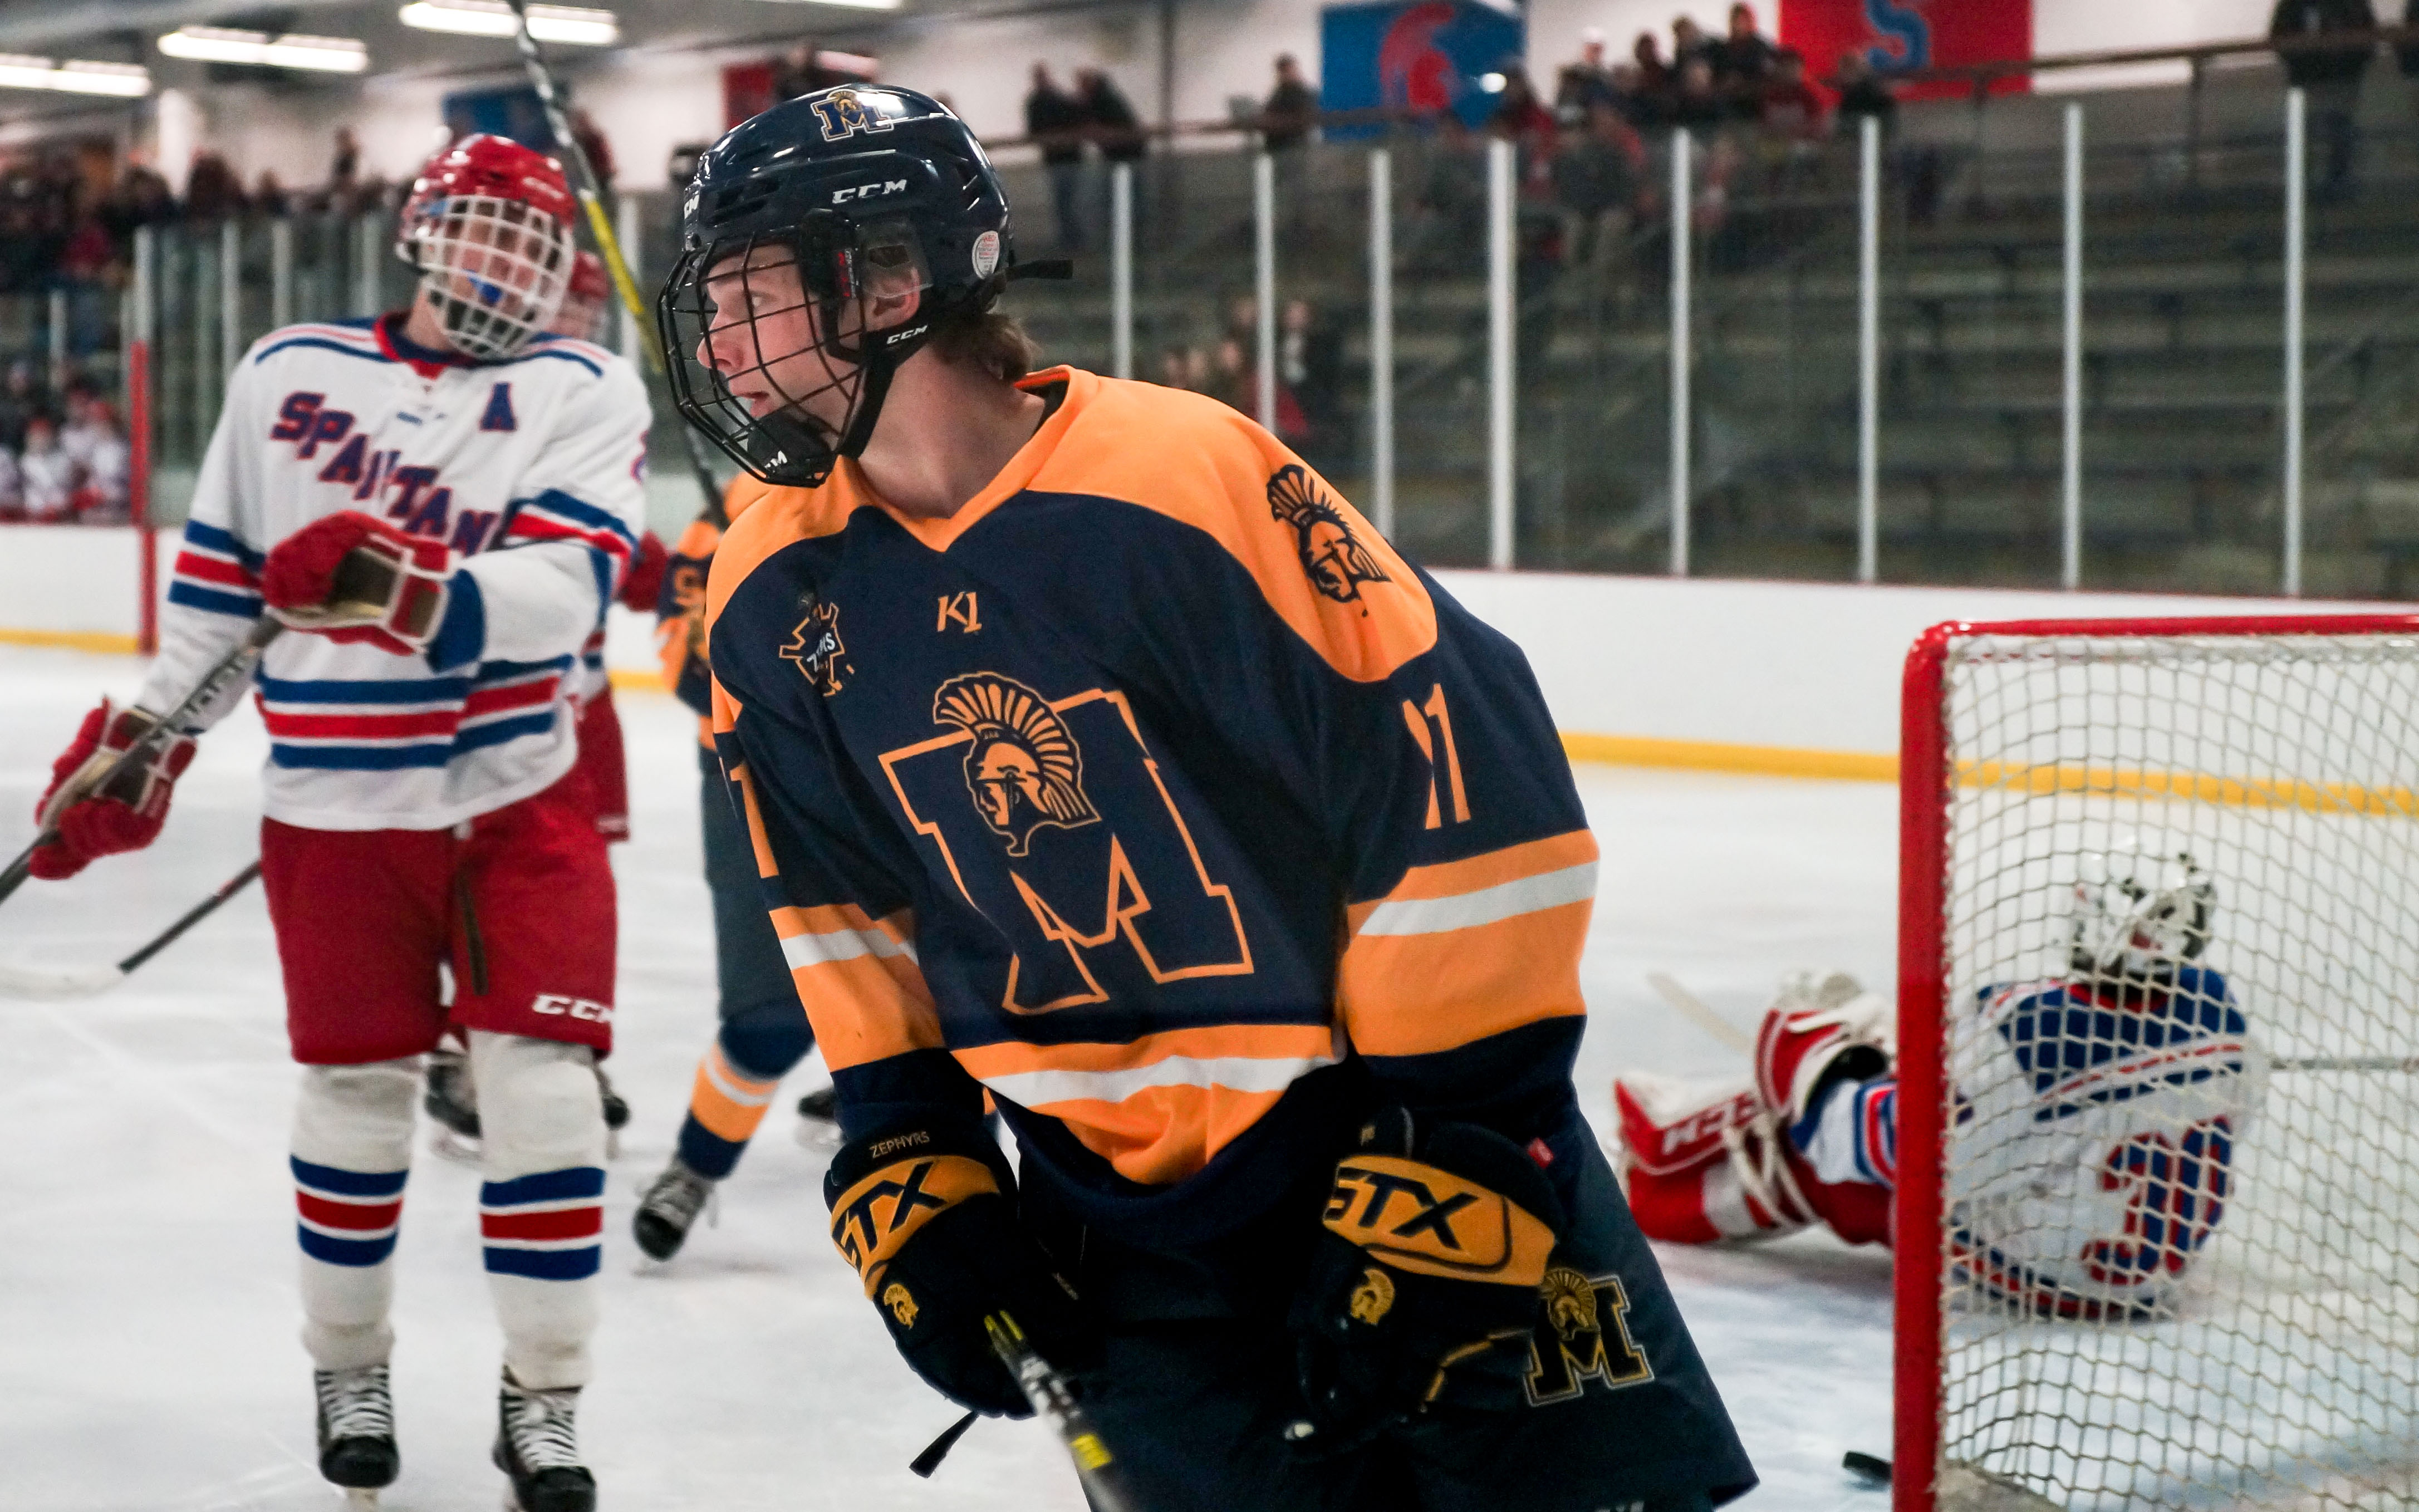 Mahtomedi's JD Metz opened the Zephers' scoring with a second-period goal Tuesday night against Simley. Photo by Korey McDermott, SportsEngine